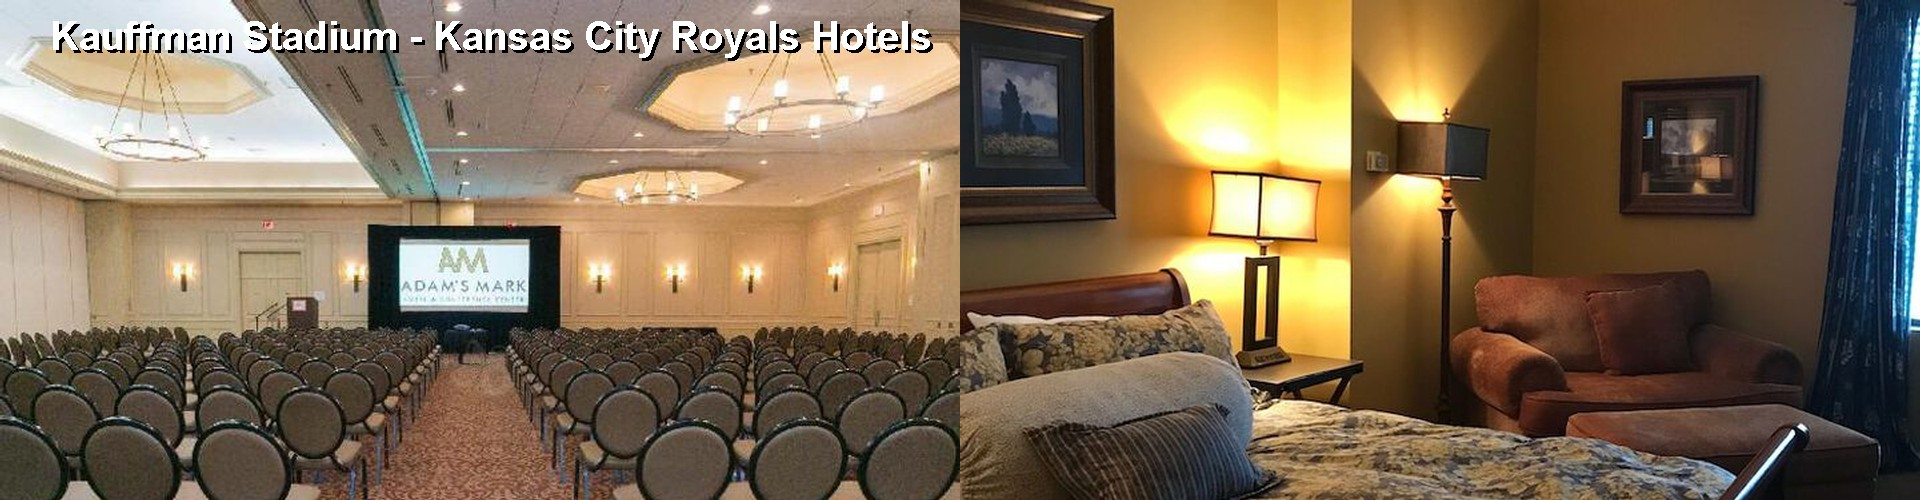 $42+ Hotels Near Kauffman Stadium Kansas City Royals (MO)